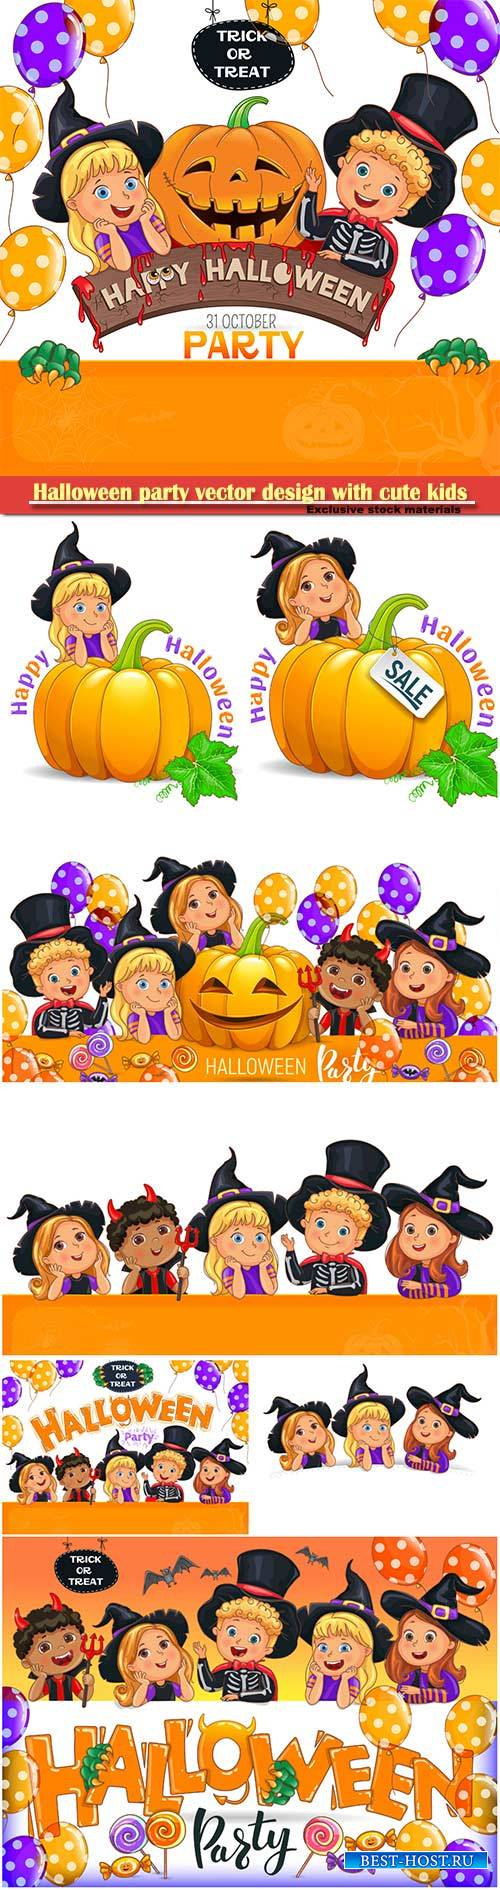 Halloween party vector design with cute kids